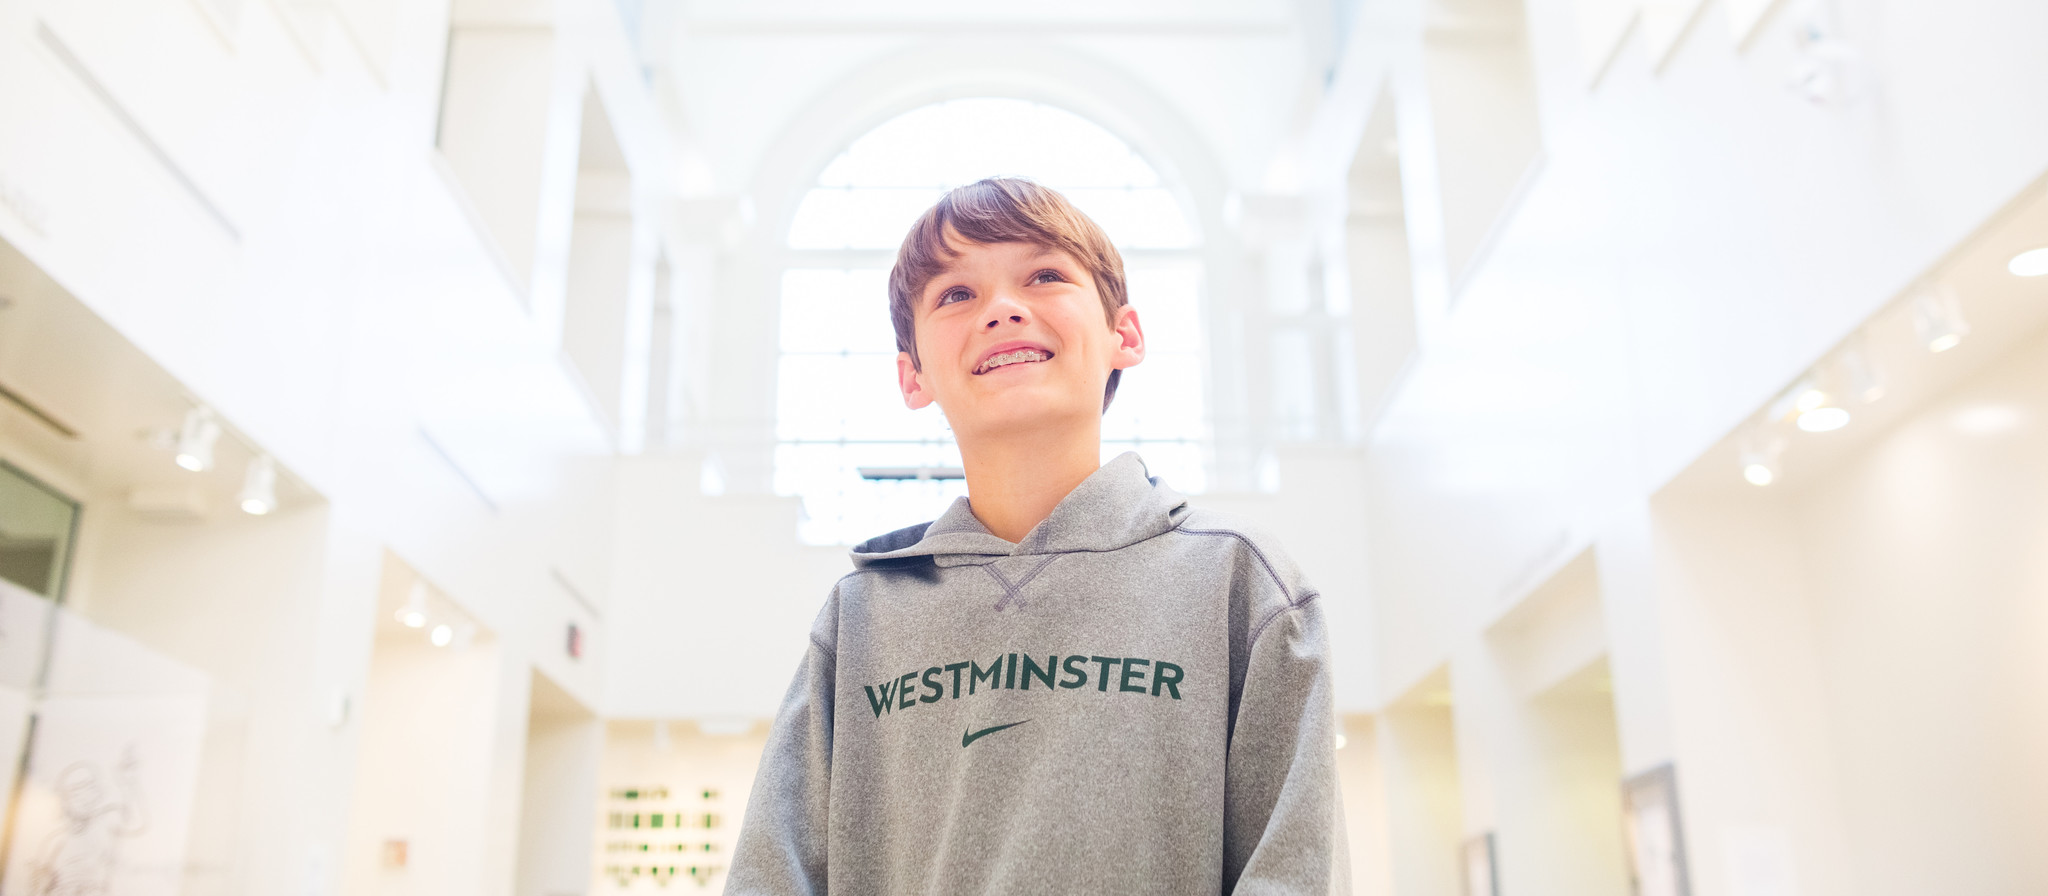 The Westminster Schools